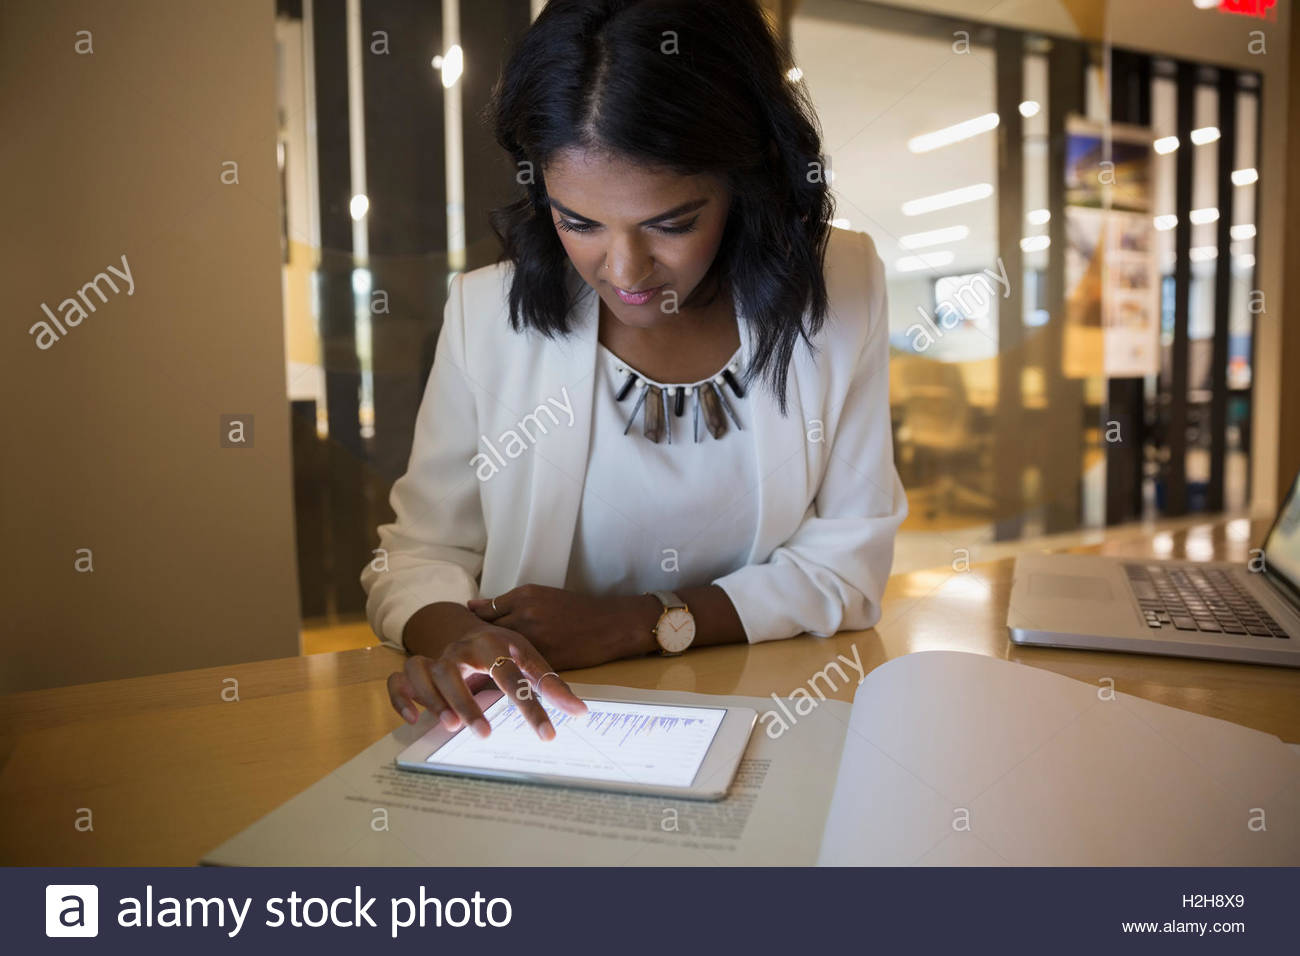 Businesswoman using digital tablet in conference room - Stock Image